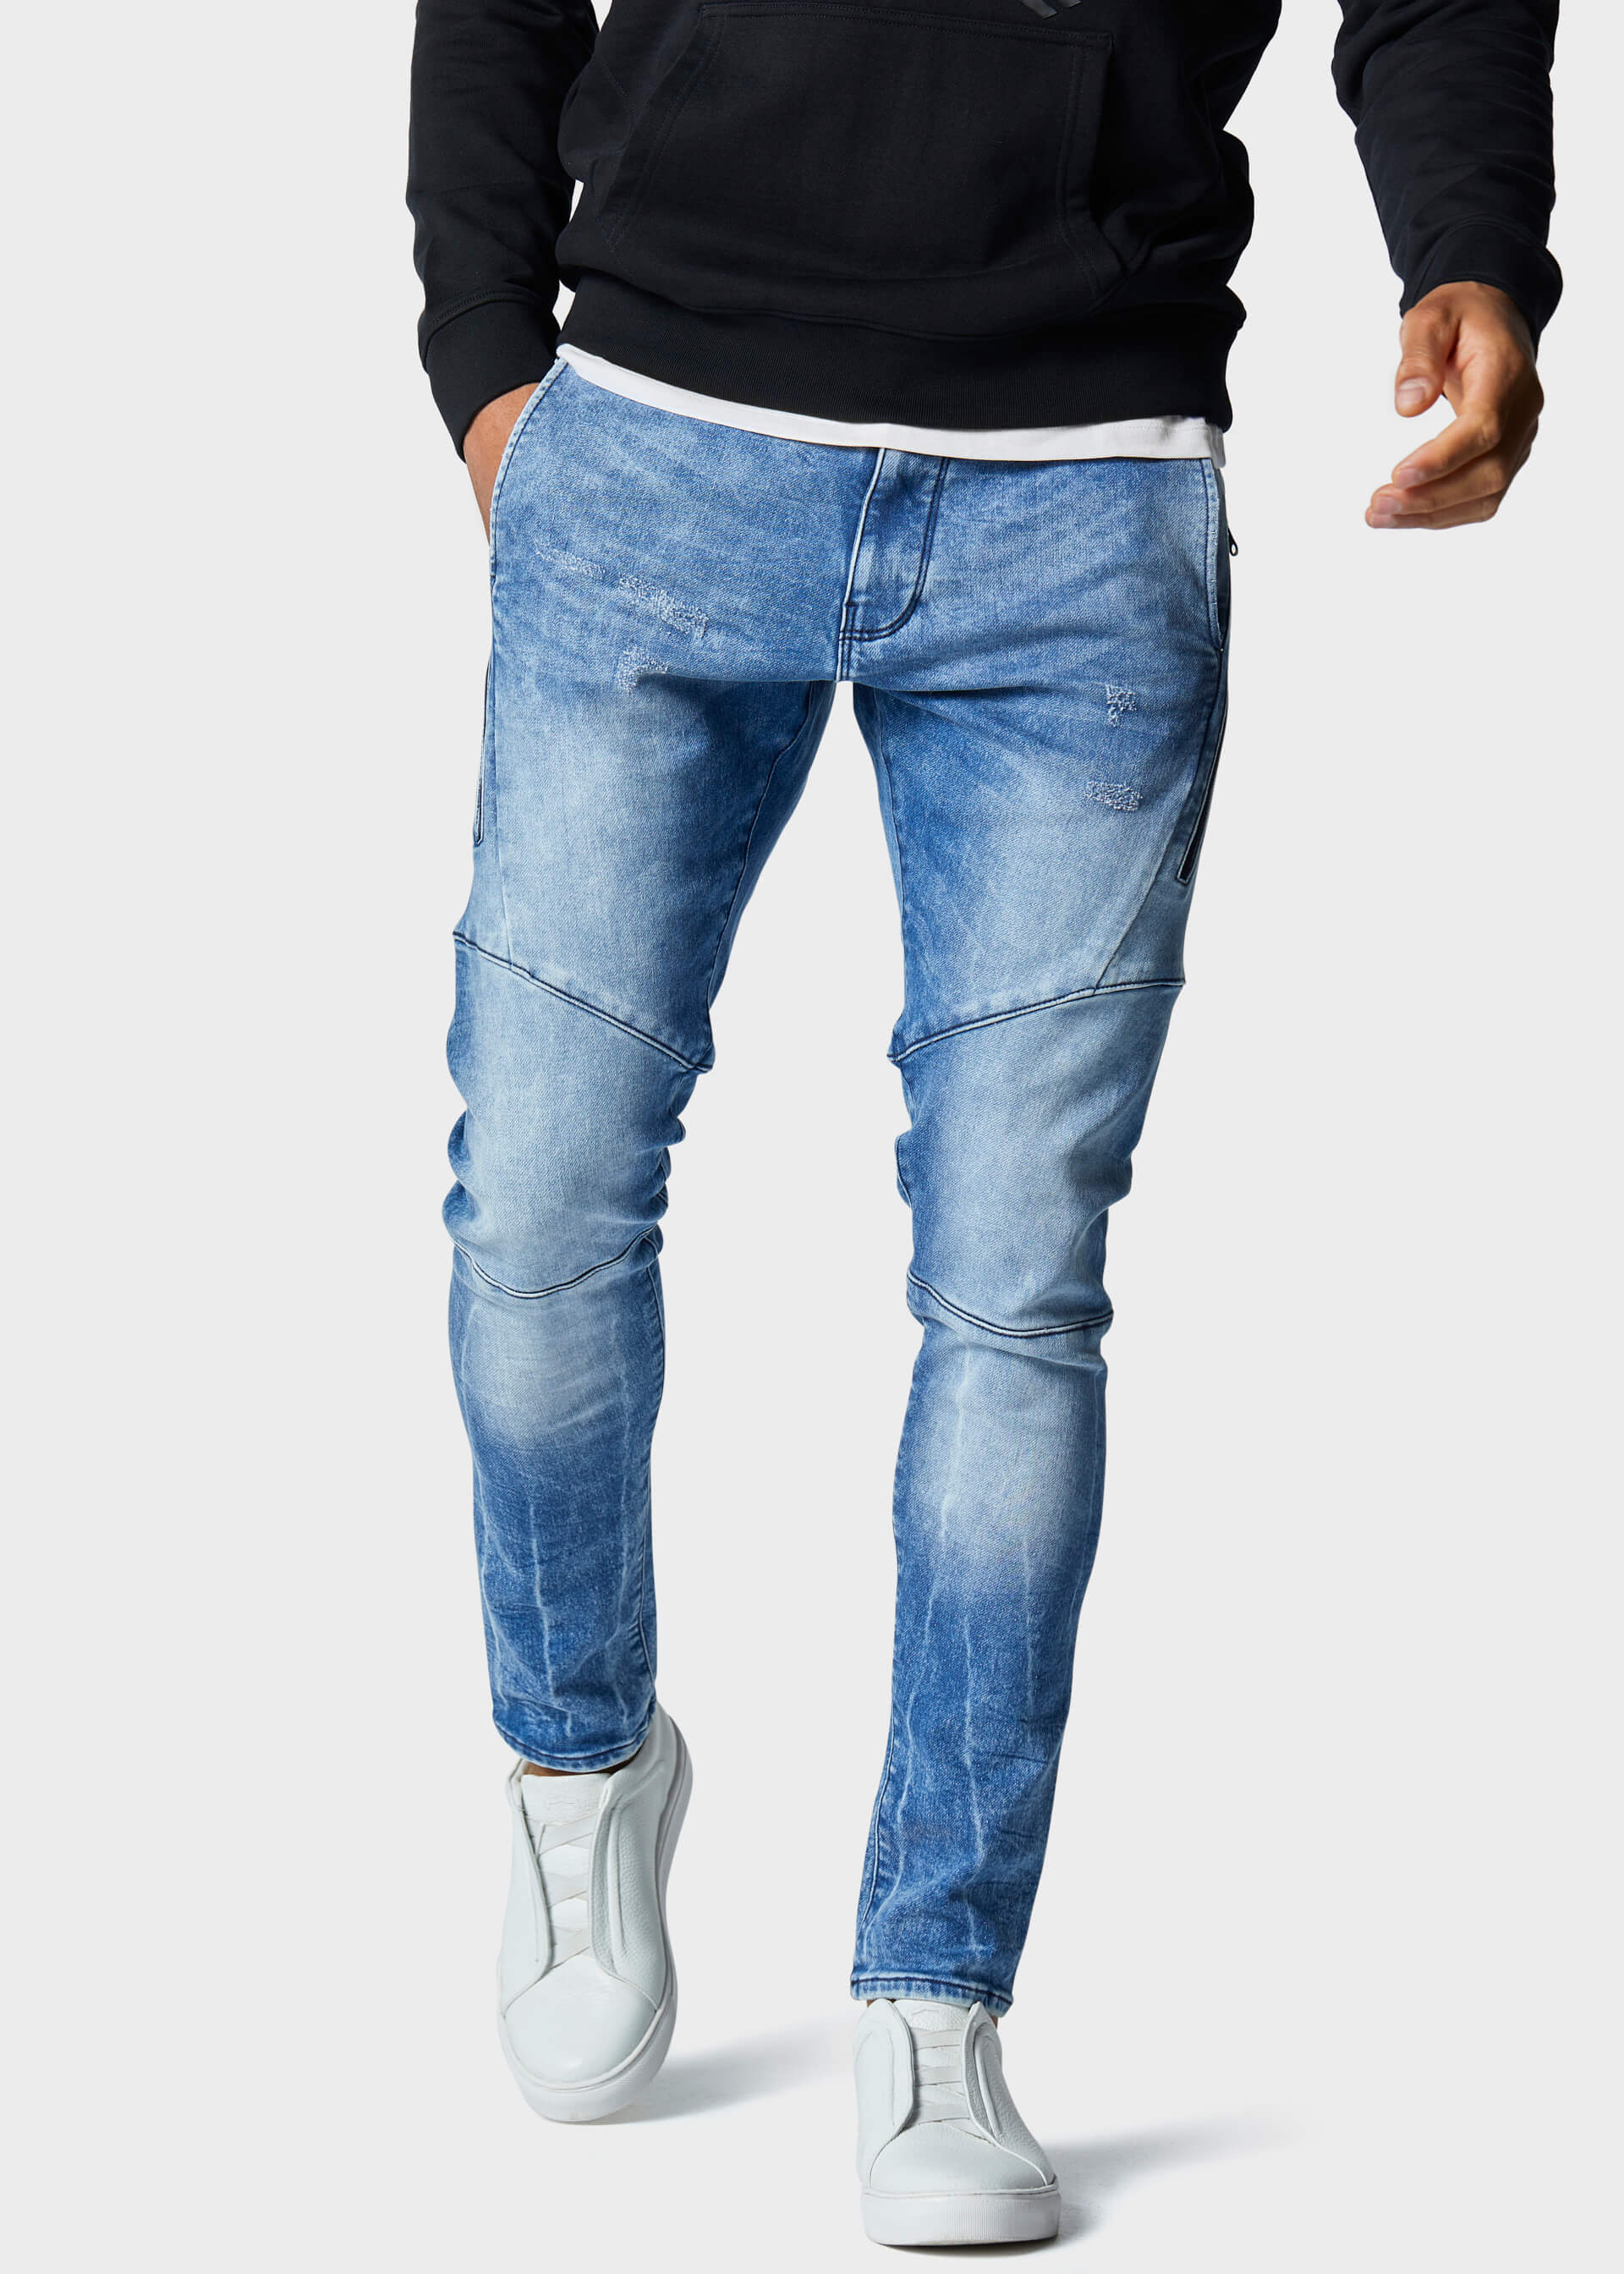 Moriarty ROG 745 Slim Fit Jeans second_image